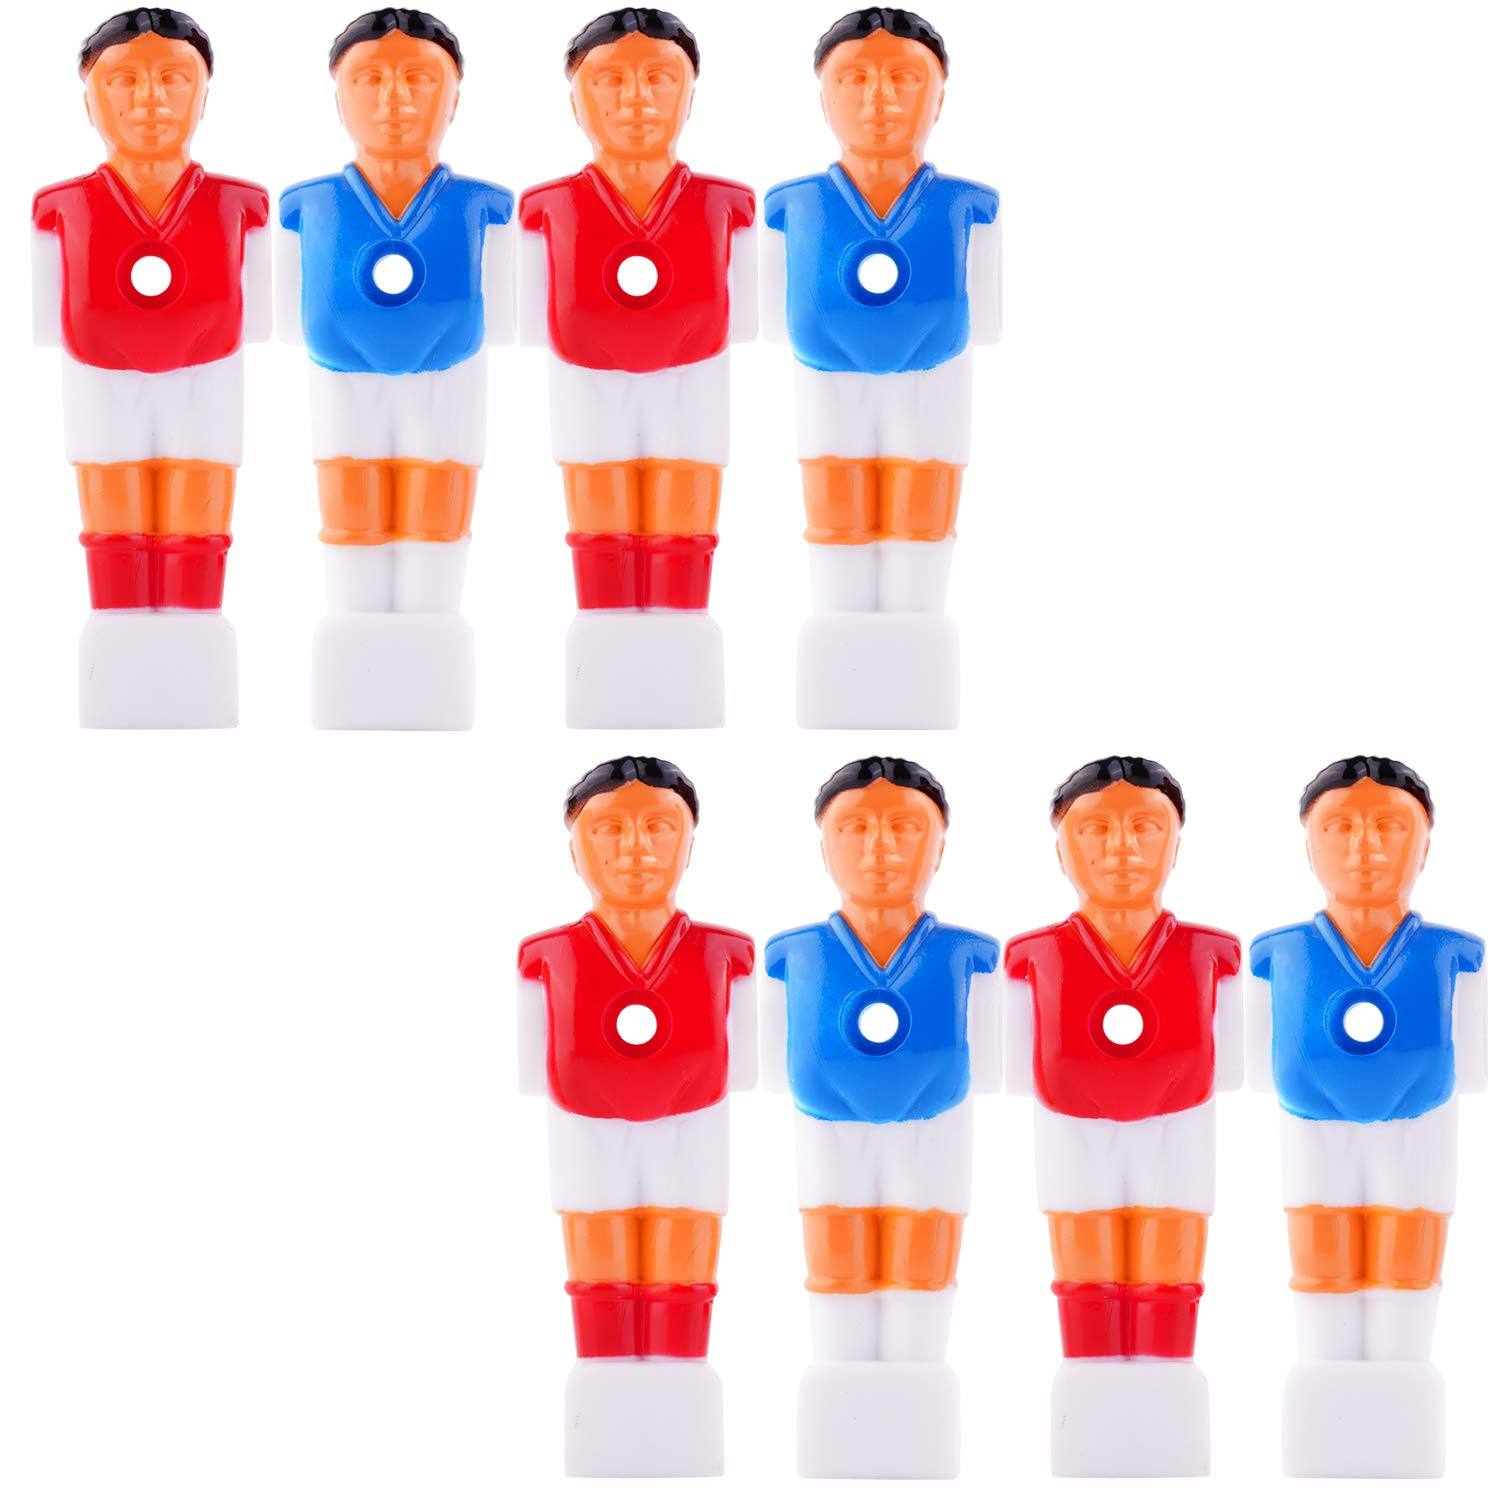 YINASI 8pcs Soccer Foosball Replacements, Foosball Man Table Guys Man Soccer Player Part Blue and Red, 4.2inch by YINASI